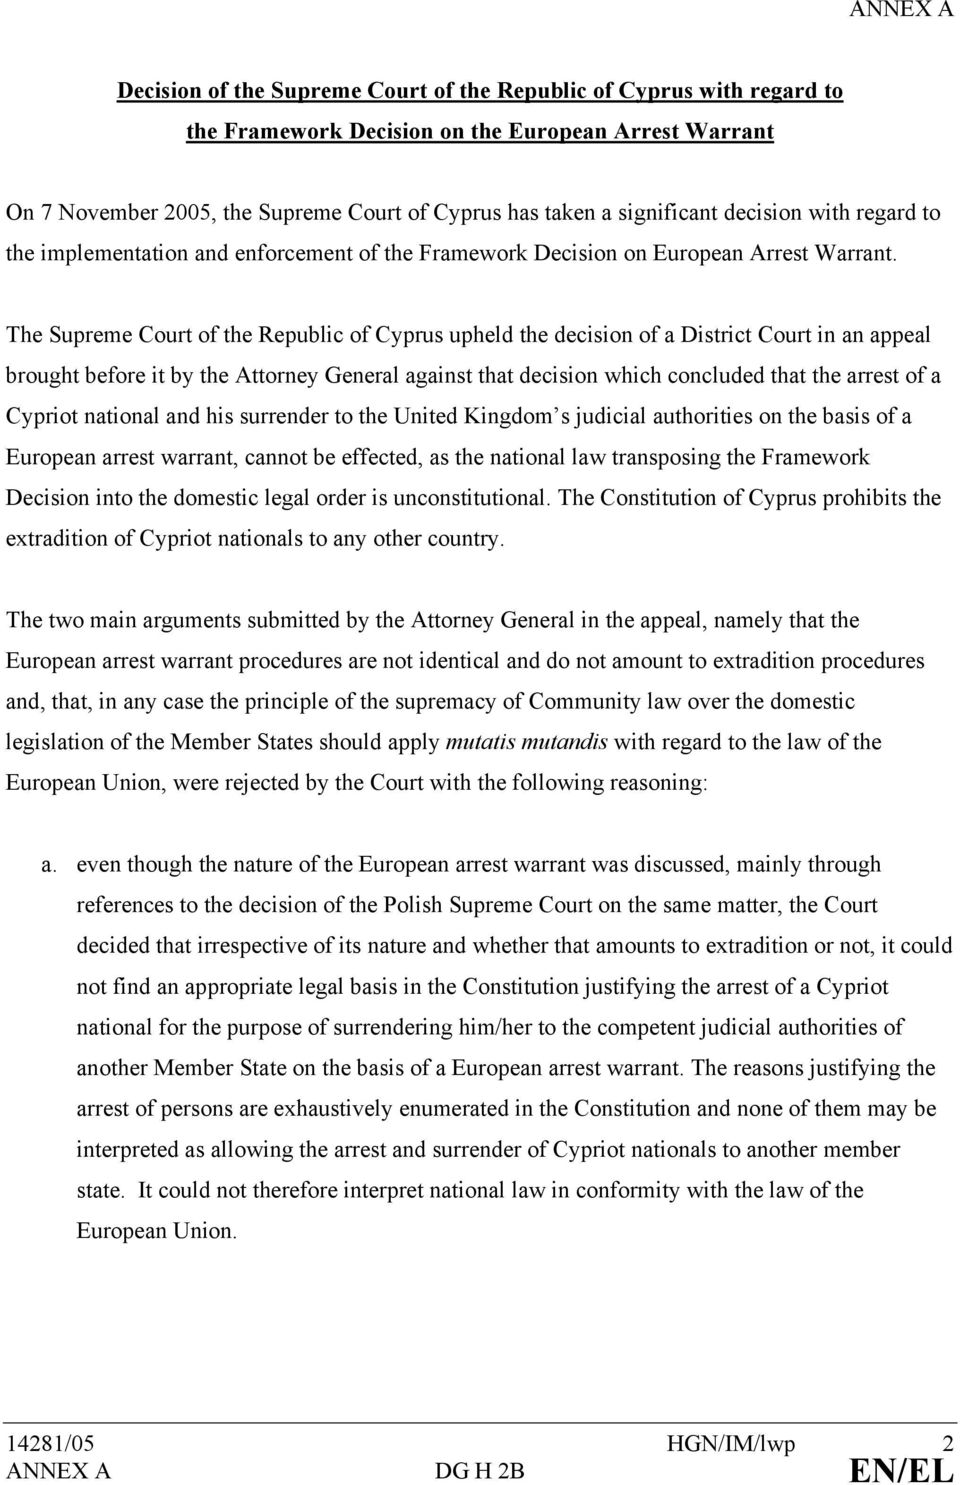 The Supreme Court of the Republic of Cyprus upheld the decision of a District Court in an appeal brought before it by the Attorney General against that decision which concluded that the arrest of a